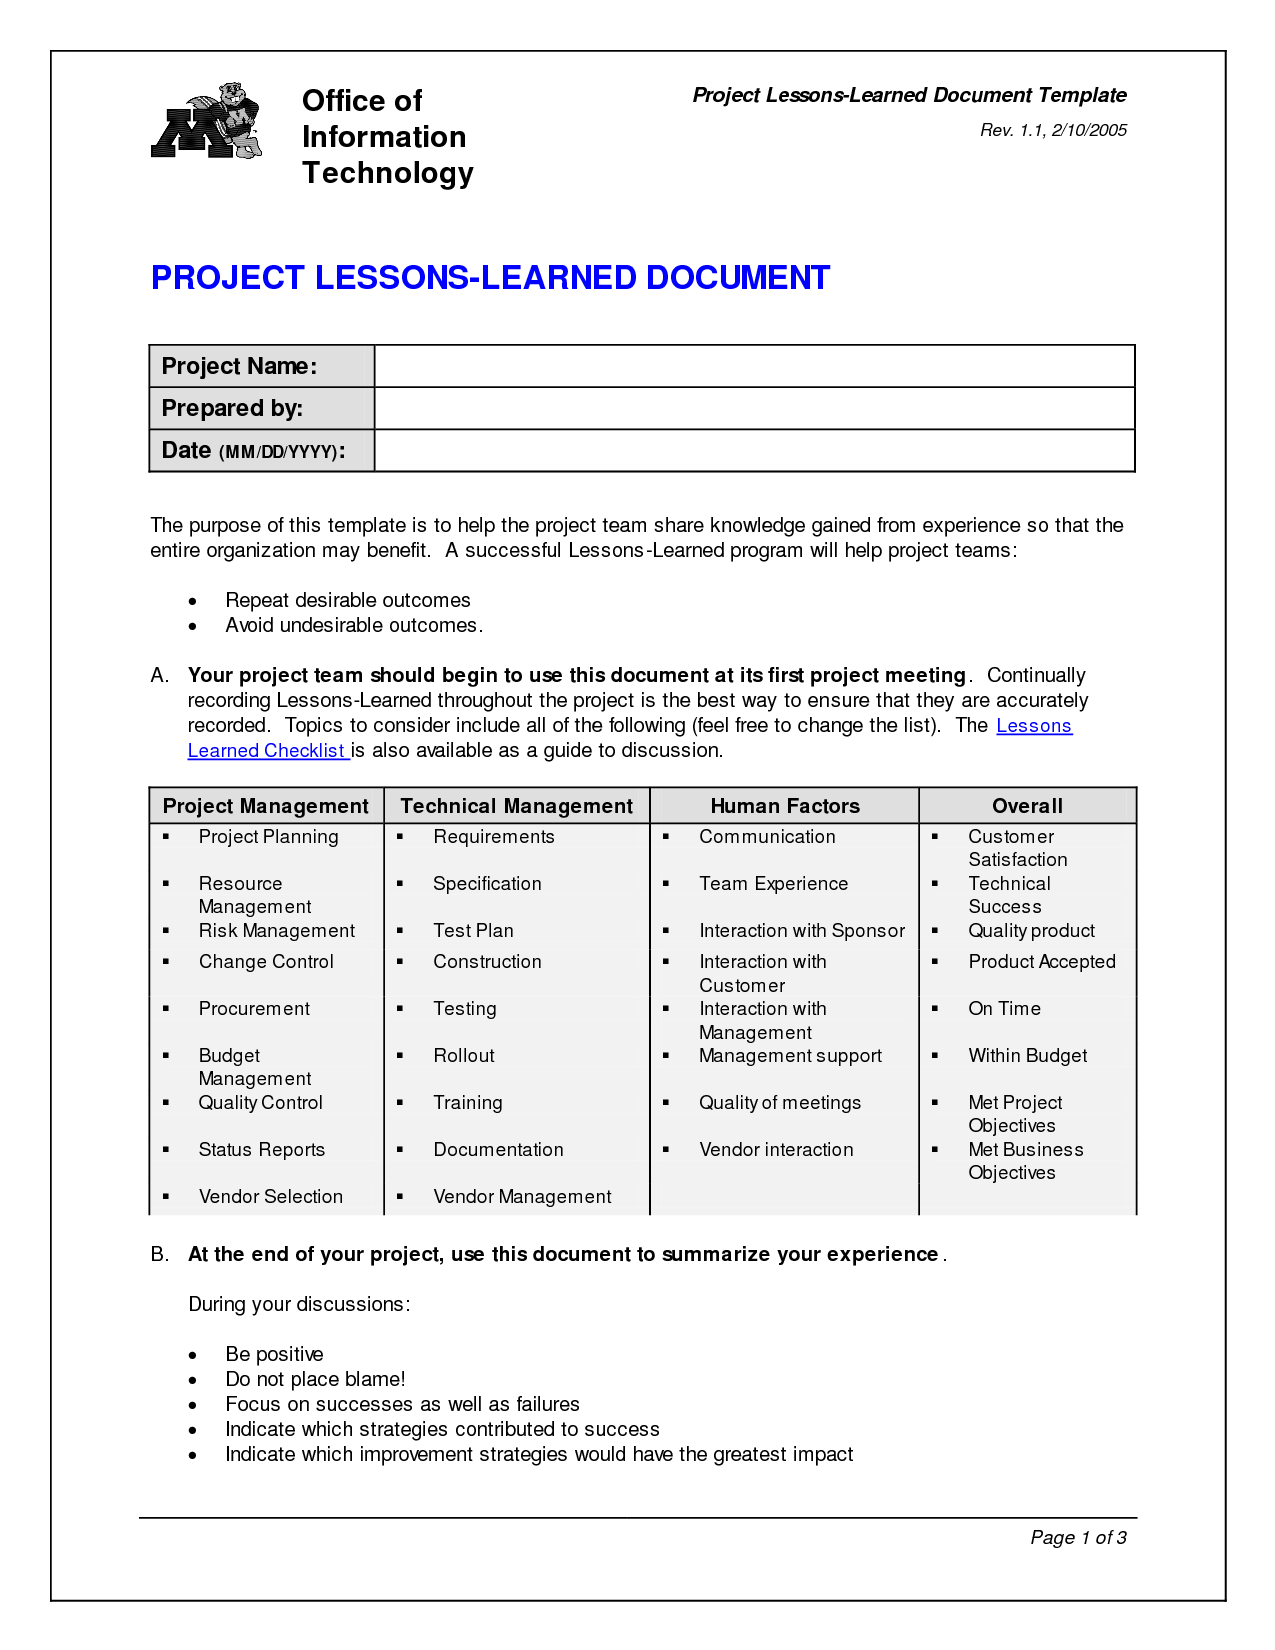 project management lessons learnt template - project lessons learned quotes quotesgram